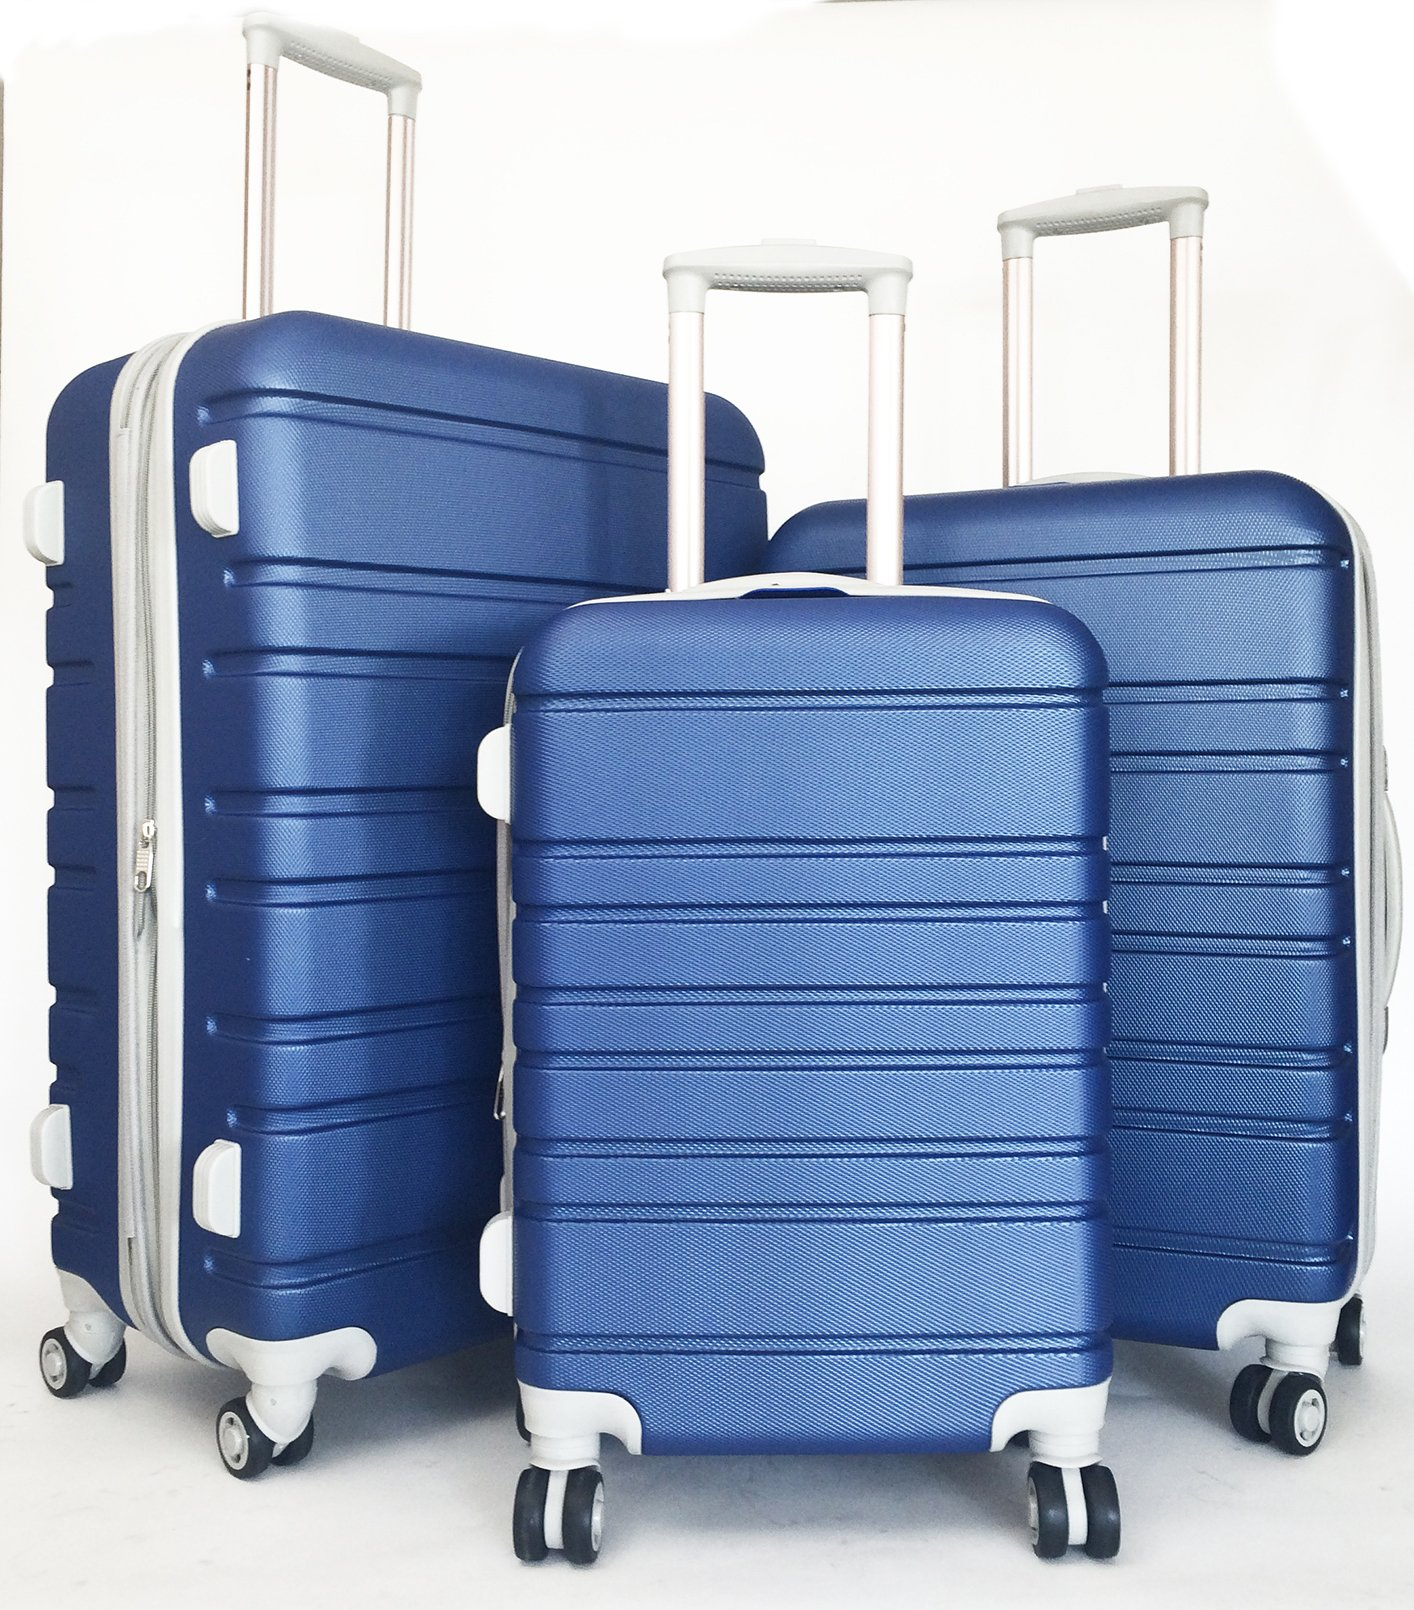 3pc Luggage Set Hardside Rolling 4wheel Spinner Upright Carryon Travel Blue